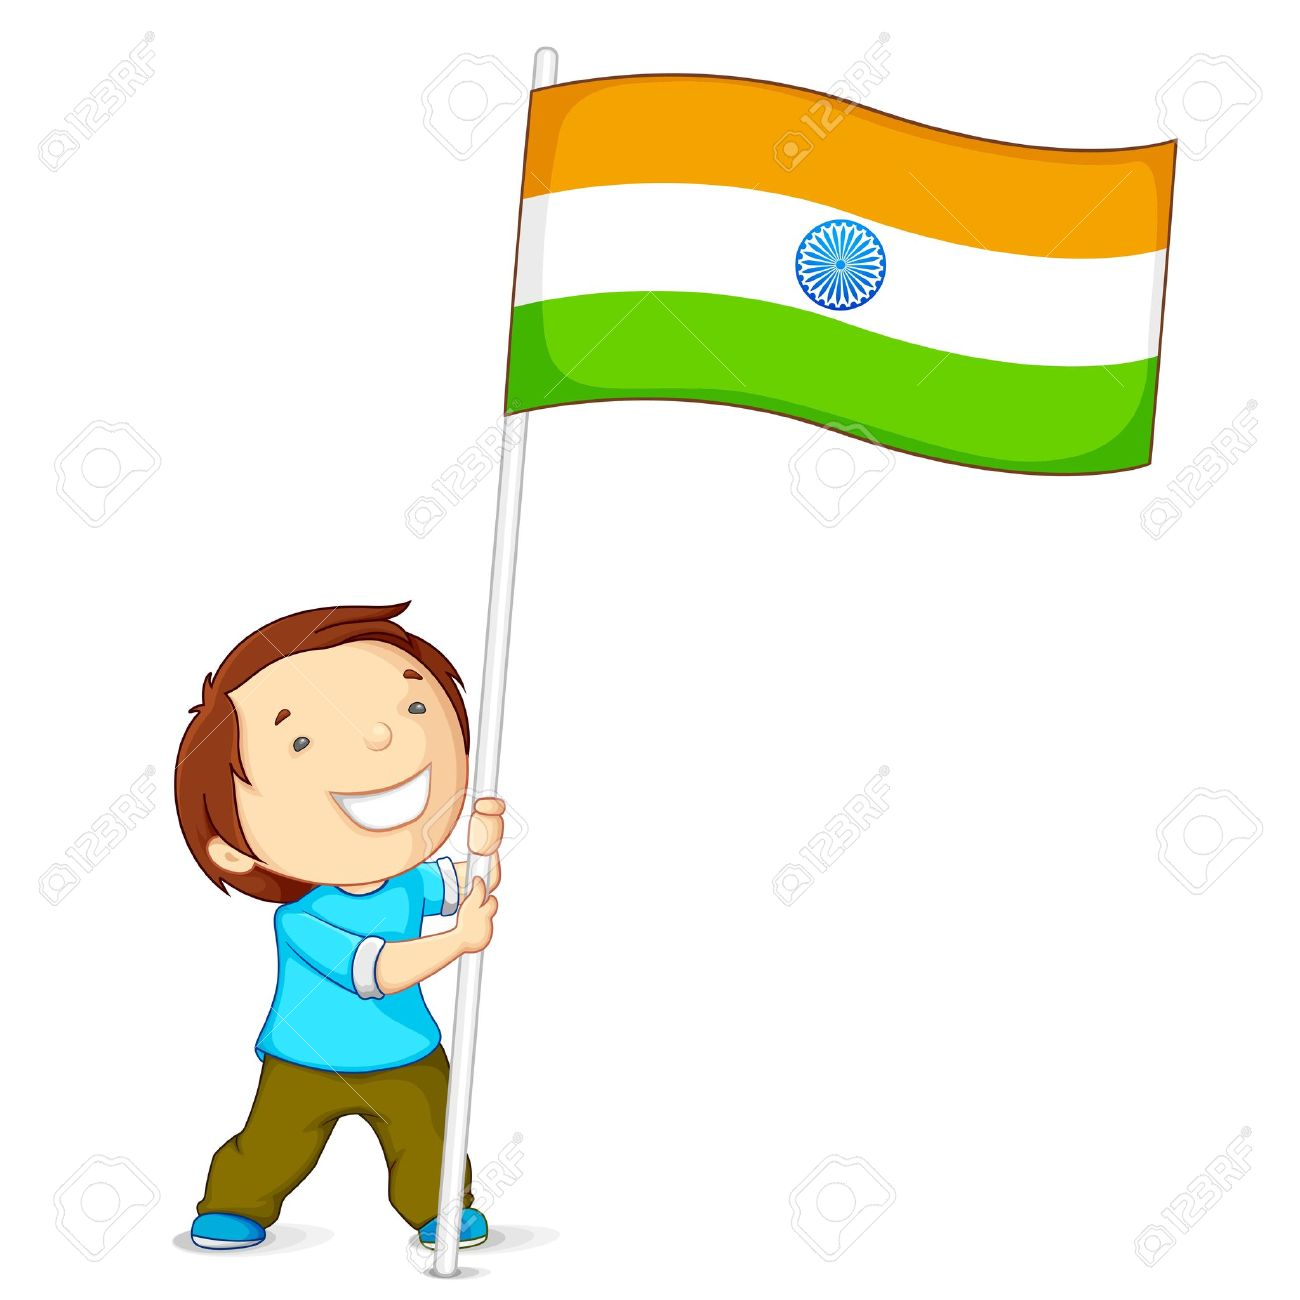 Clipart Child Holding Flag.